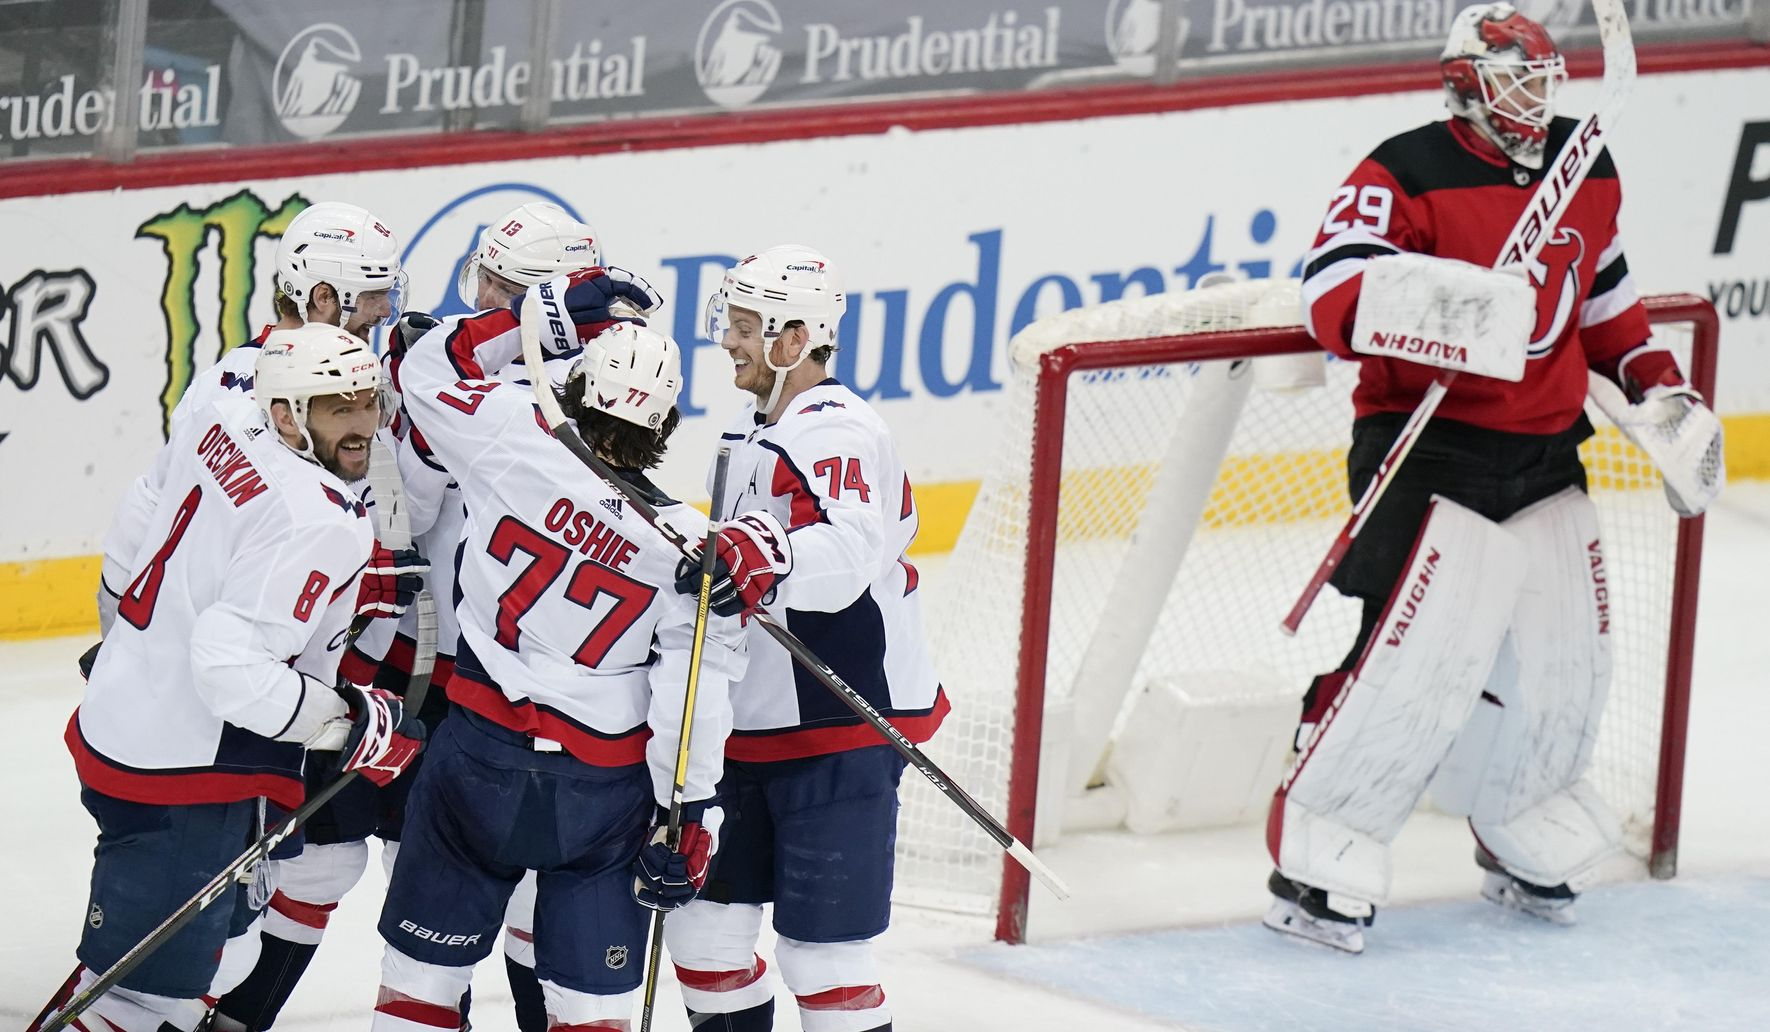 Ovechkin scores on power play, Capitals hold off Devils 5-4